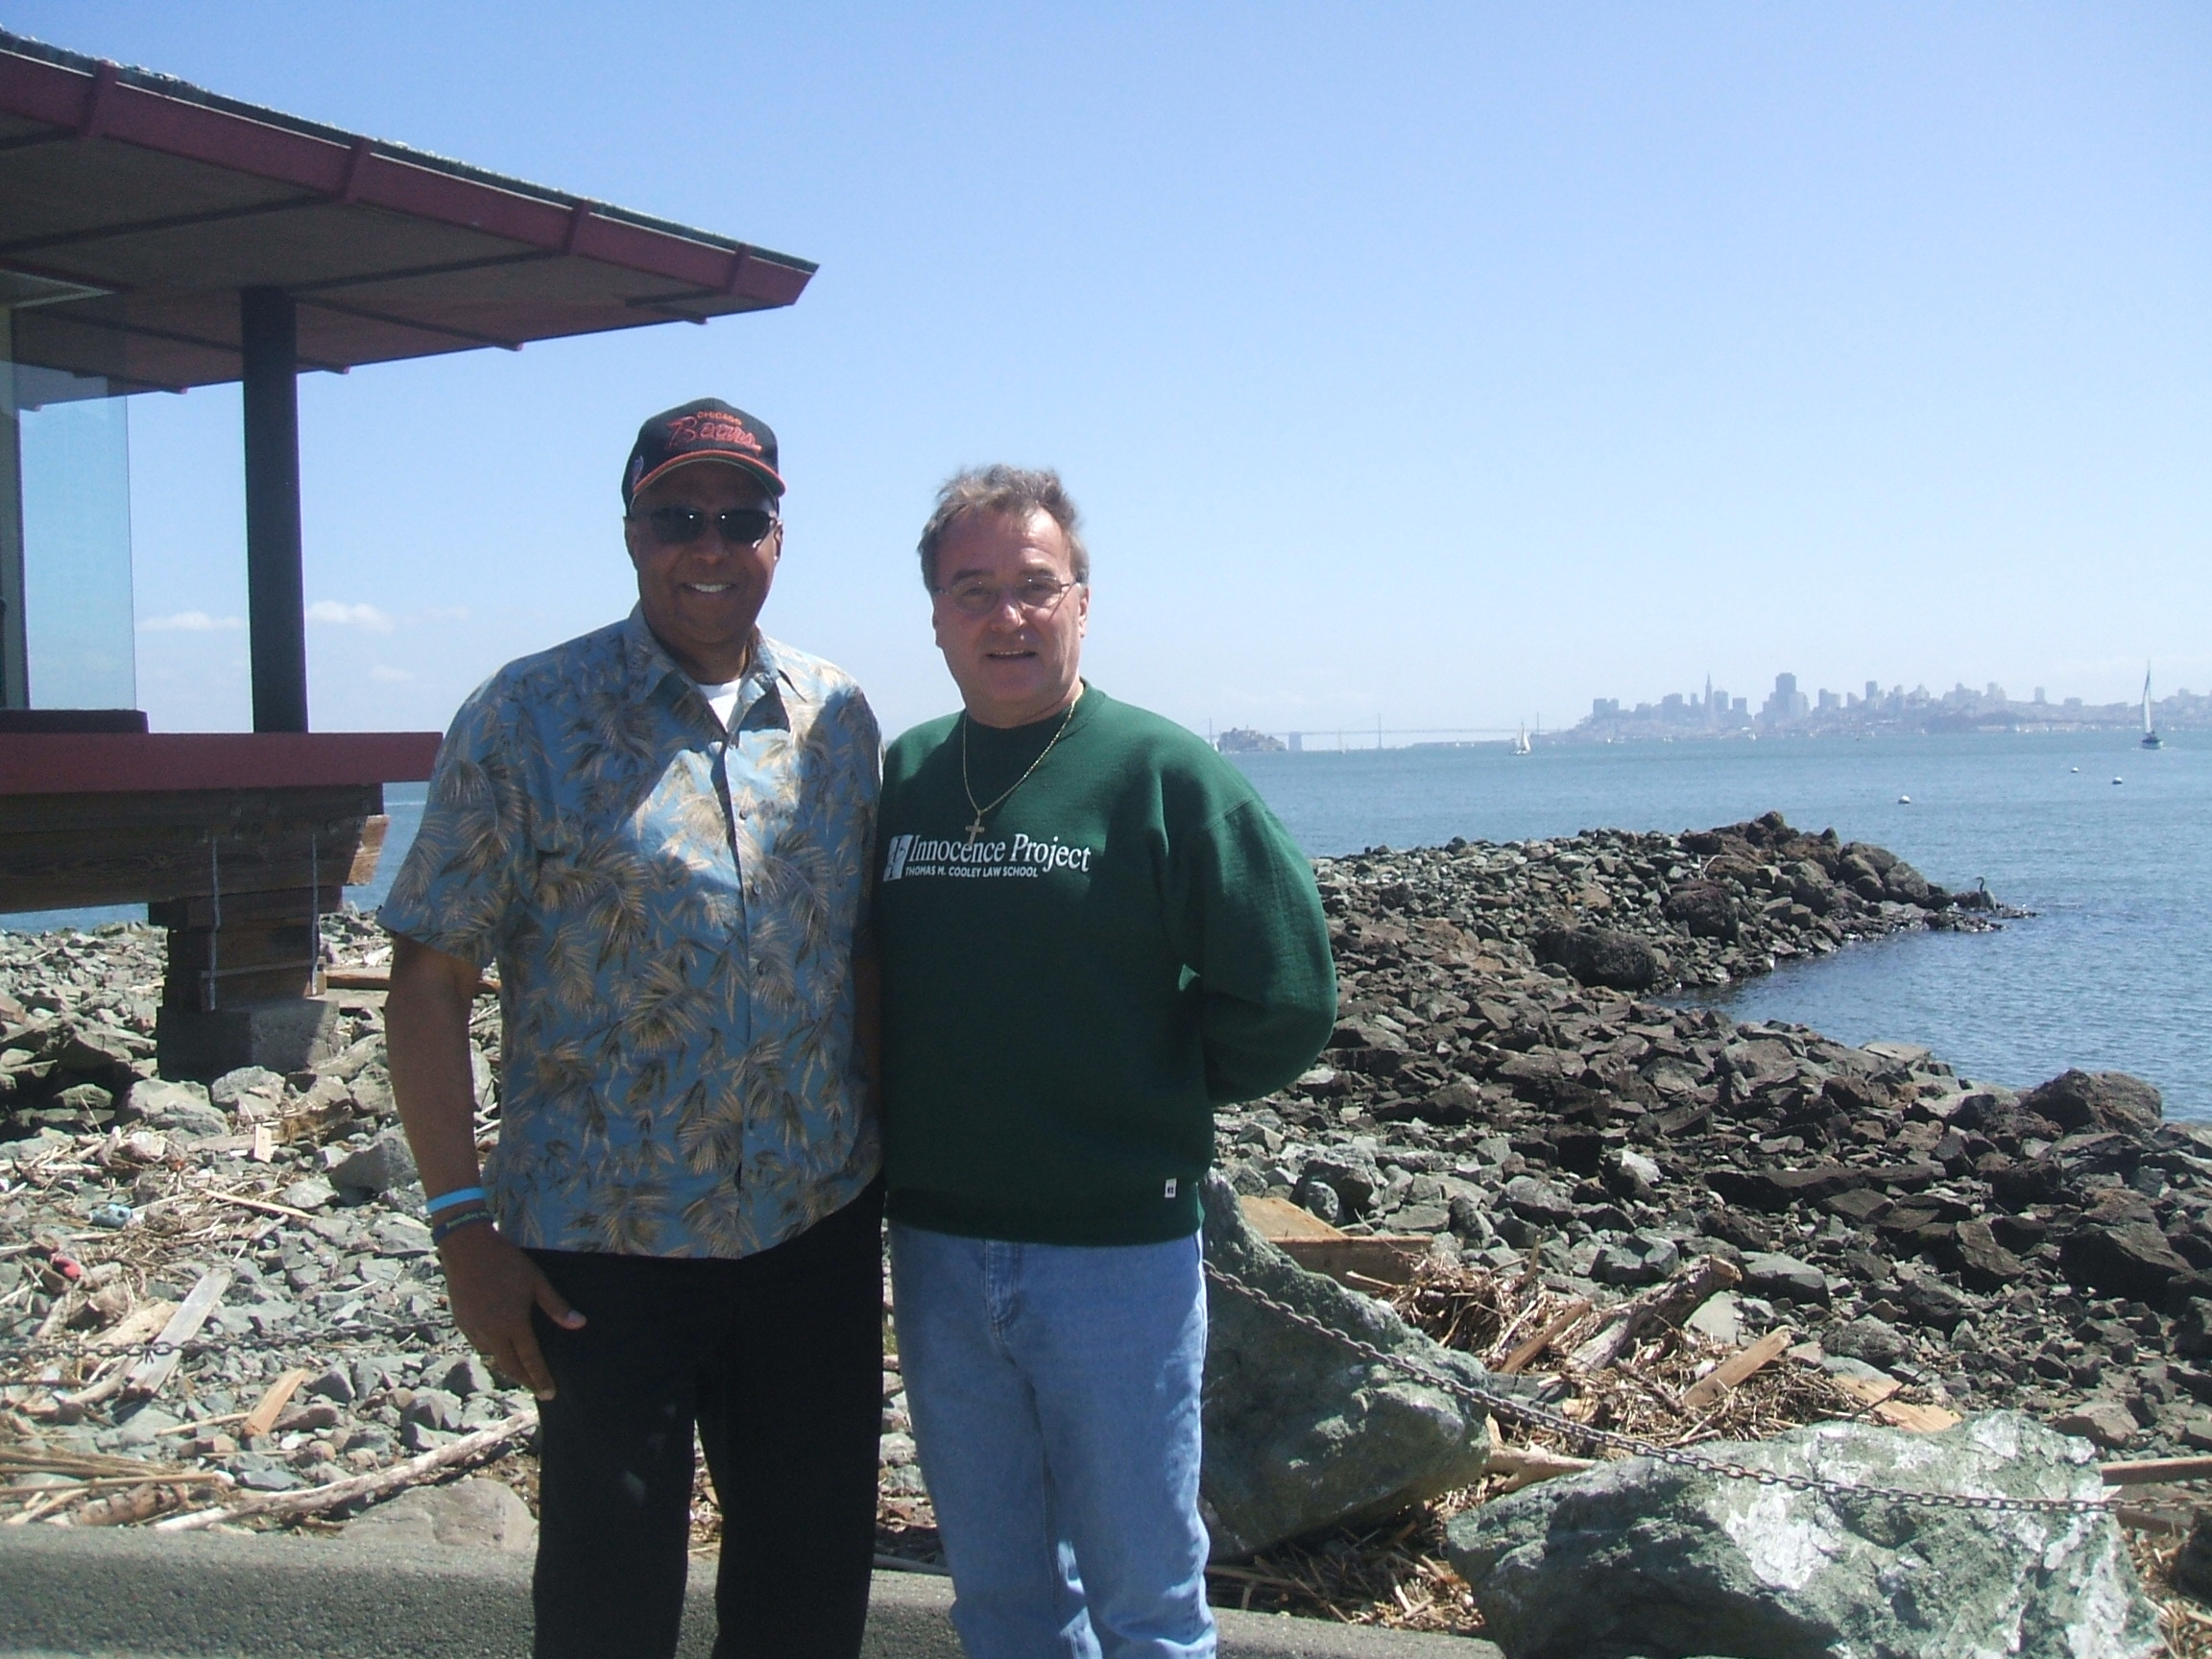 In San Jose 2008 Bill Proctor and Ken with Alcatraz Prison in the background